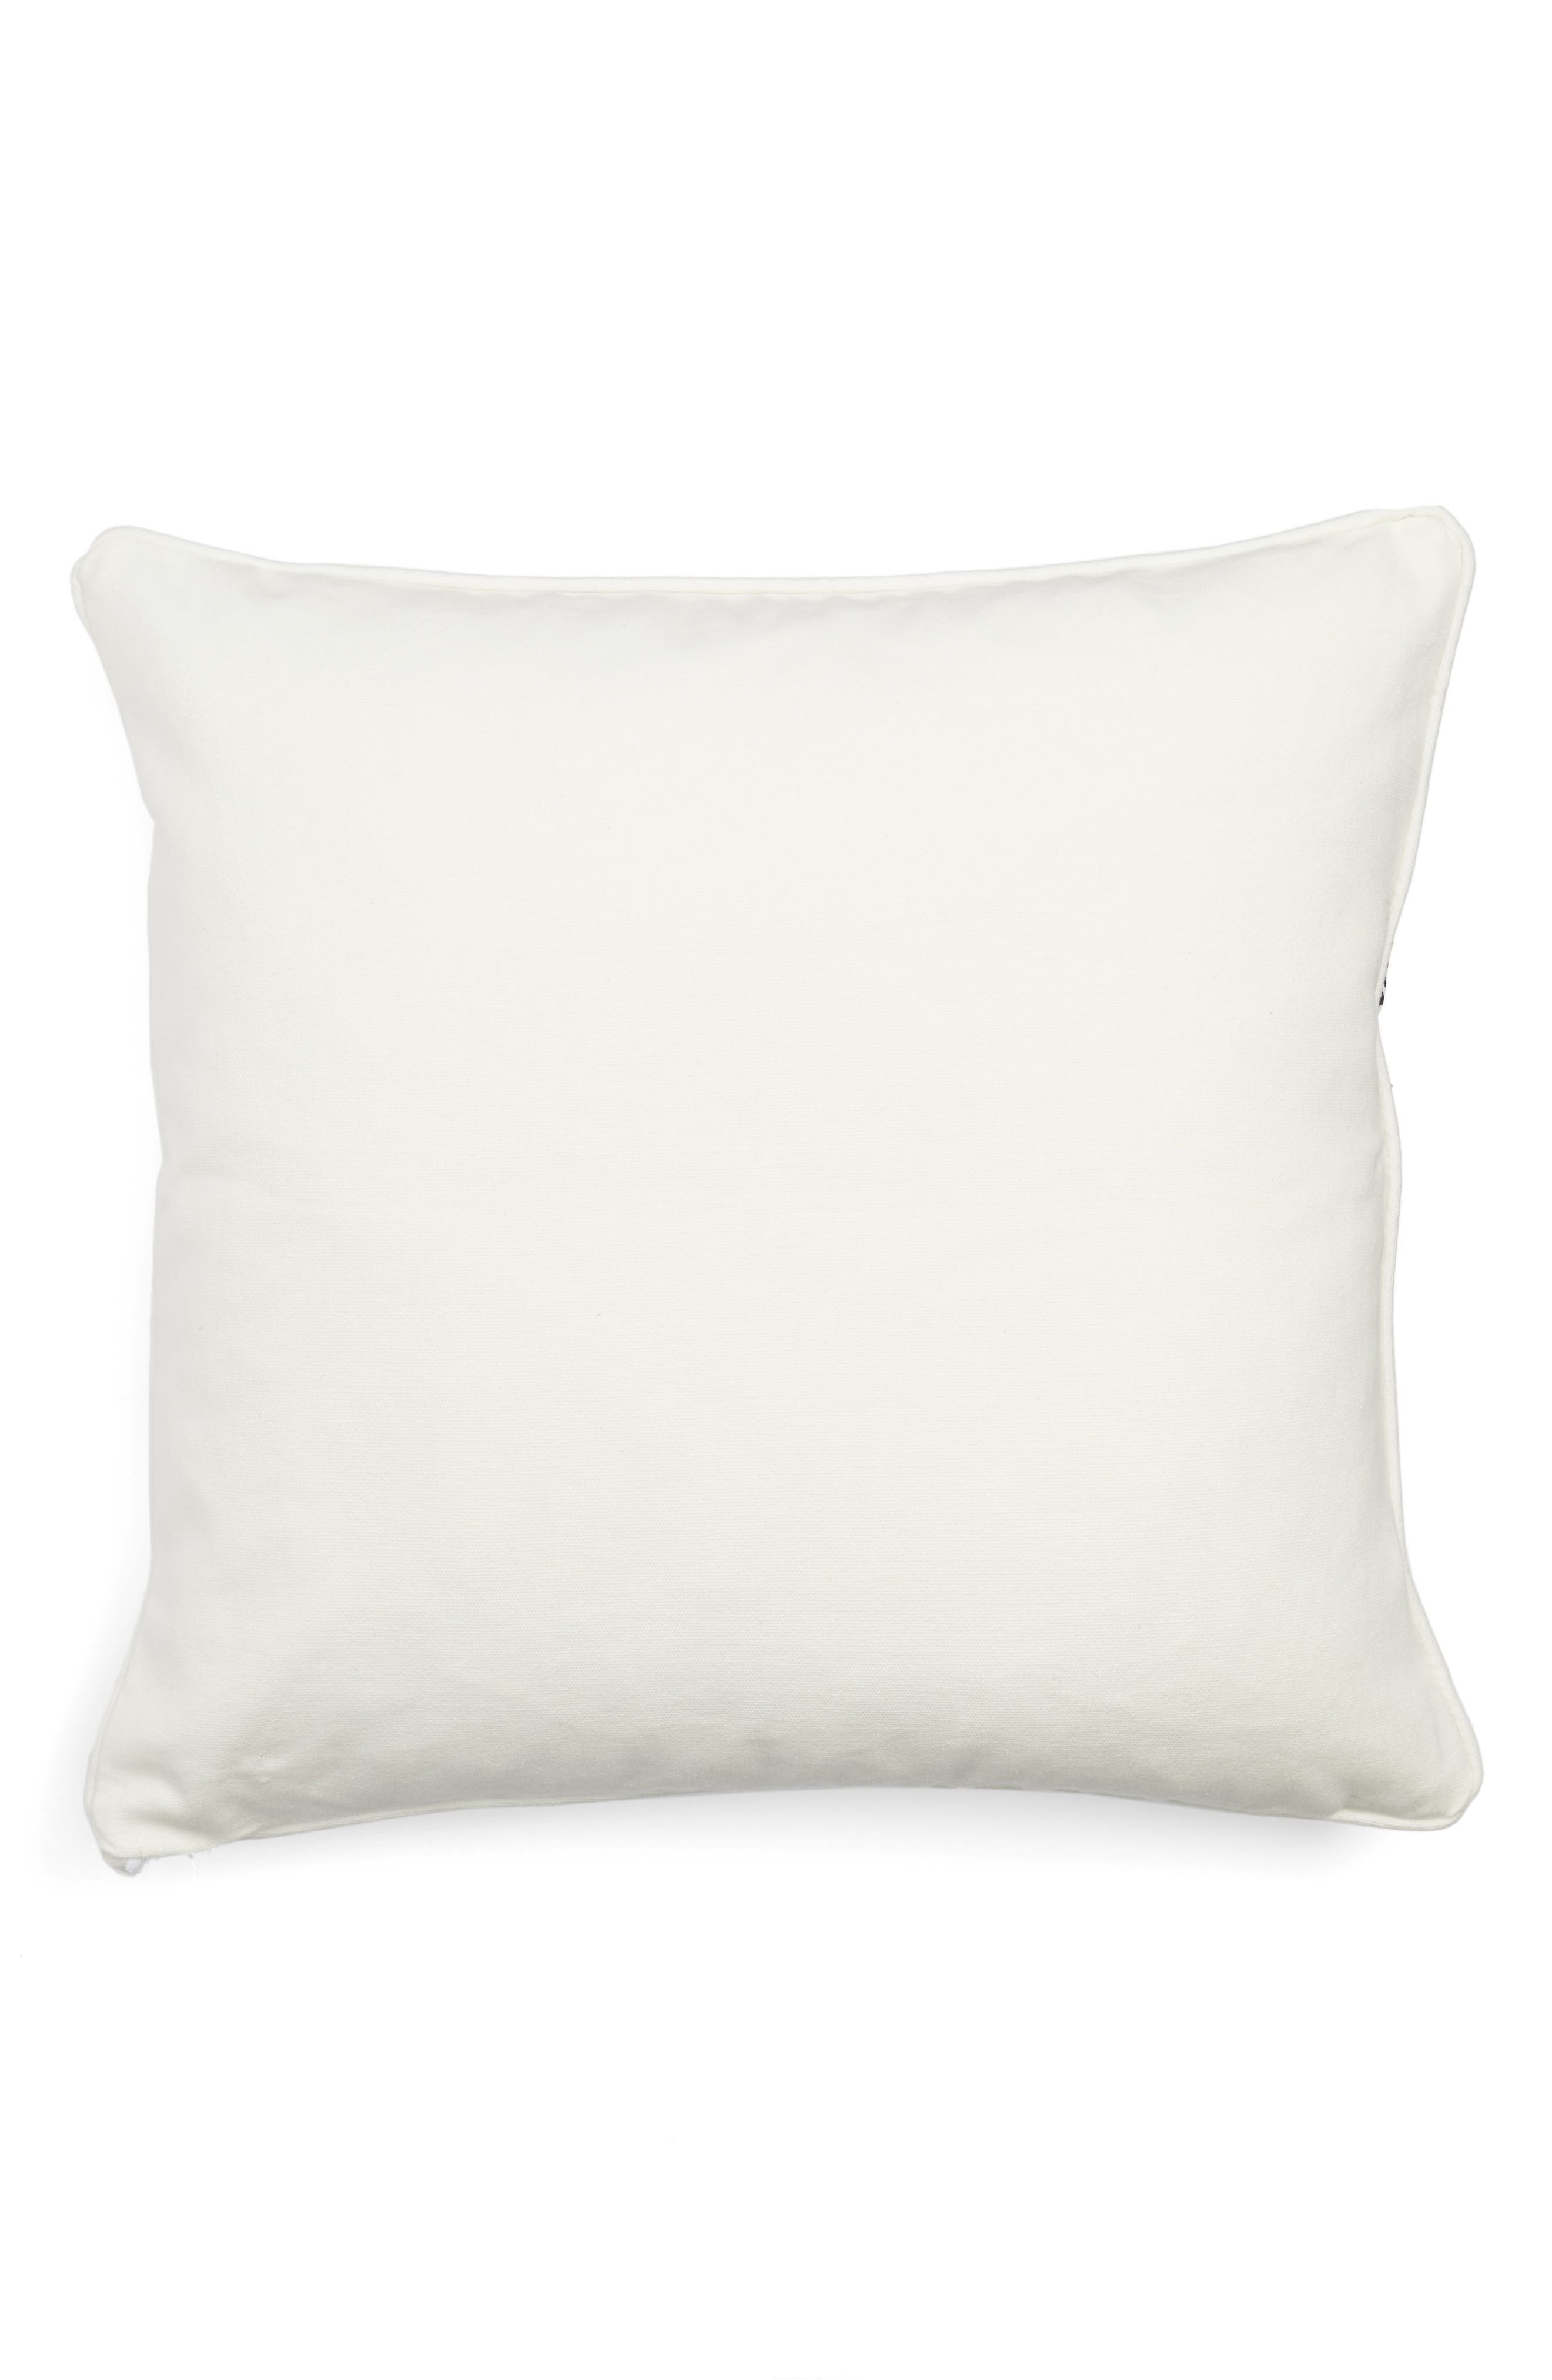 Embroidered Medallion Pillow,                             Alternate thumbnail 2, color,